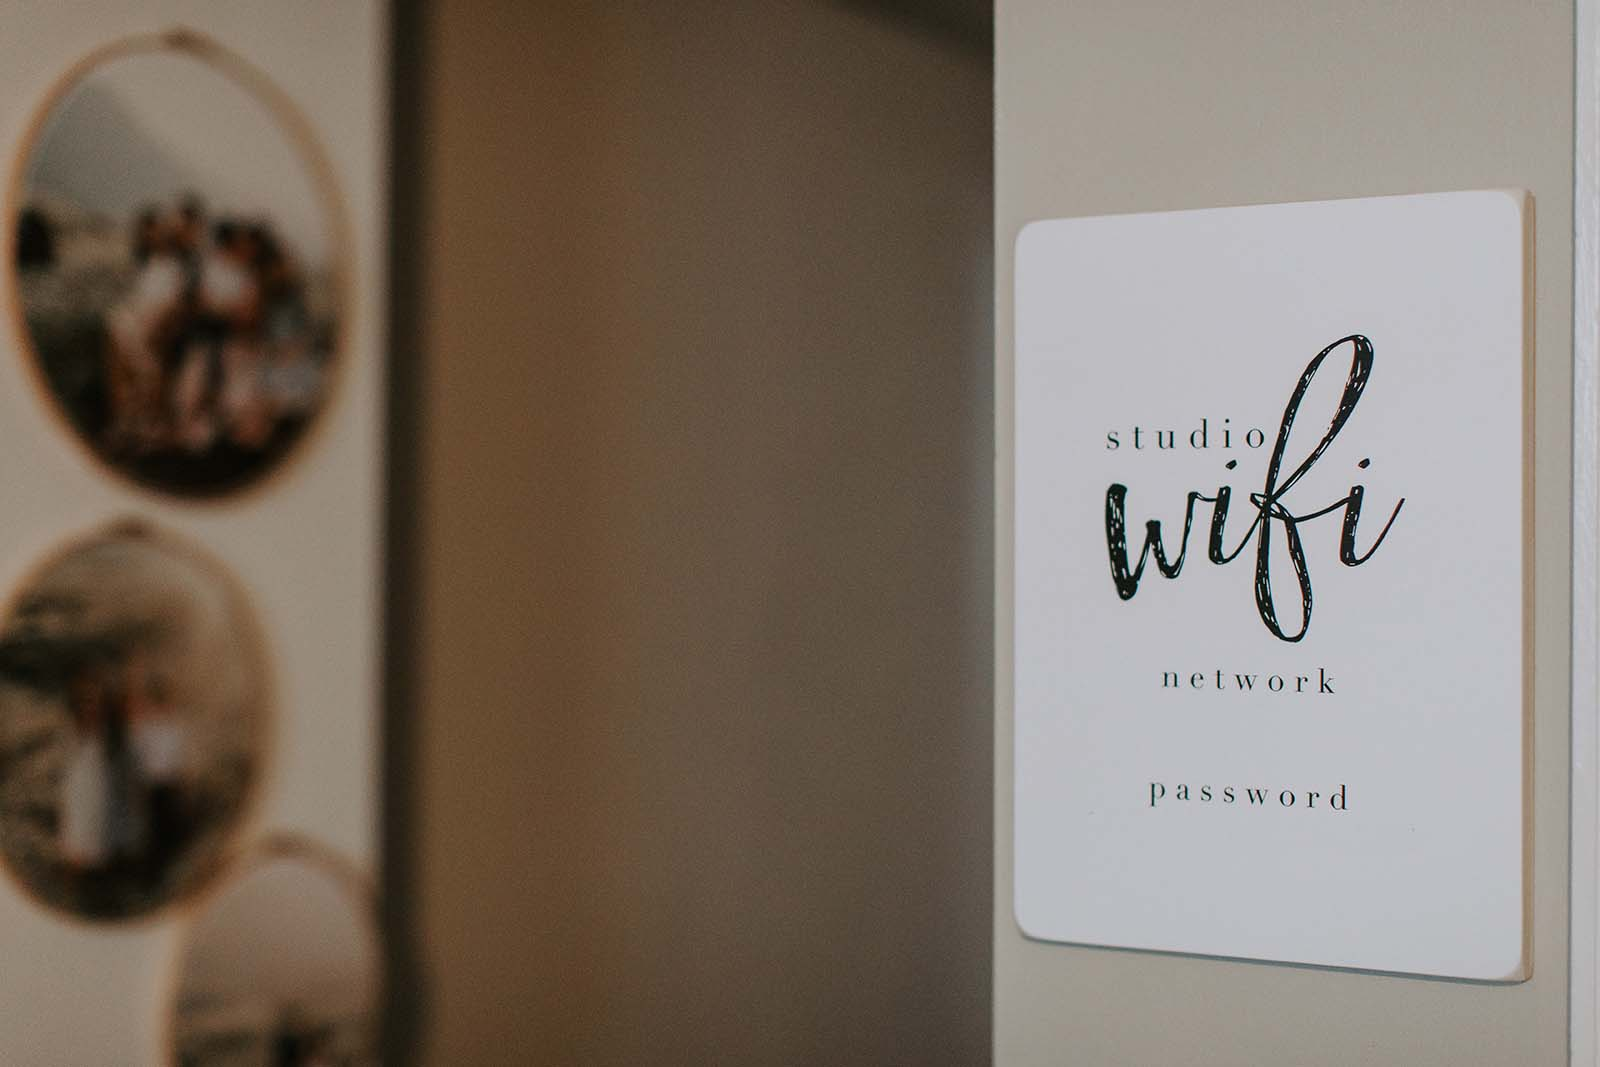 Newborn photography studio essentials - Wifi creates a great client experience